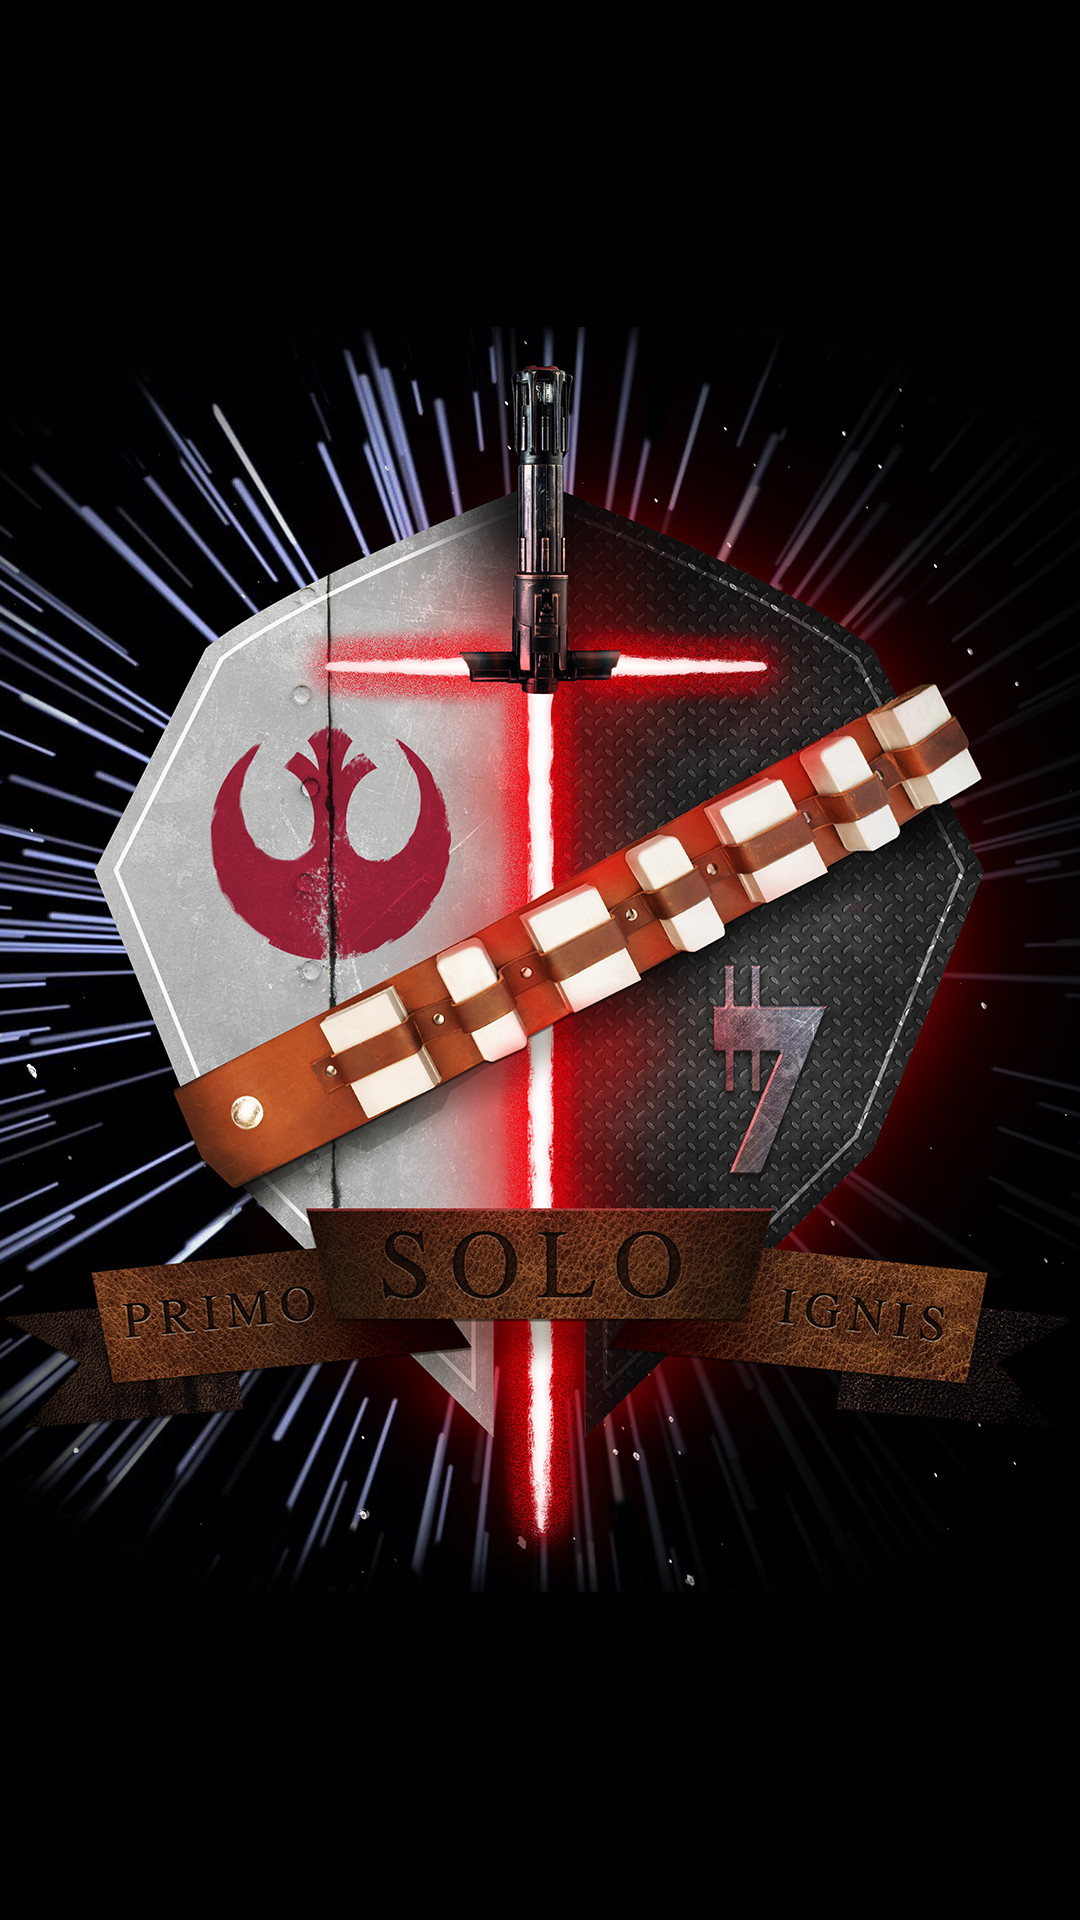 Star Wars Family Crest Han Solo Primo Solo Ignis iPhone 6+ HD Wallpaper …